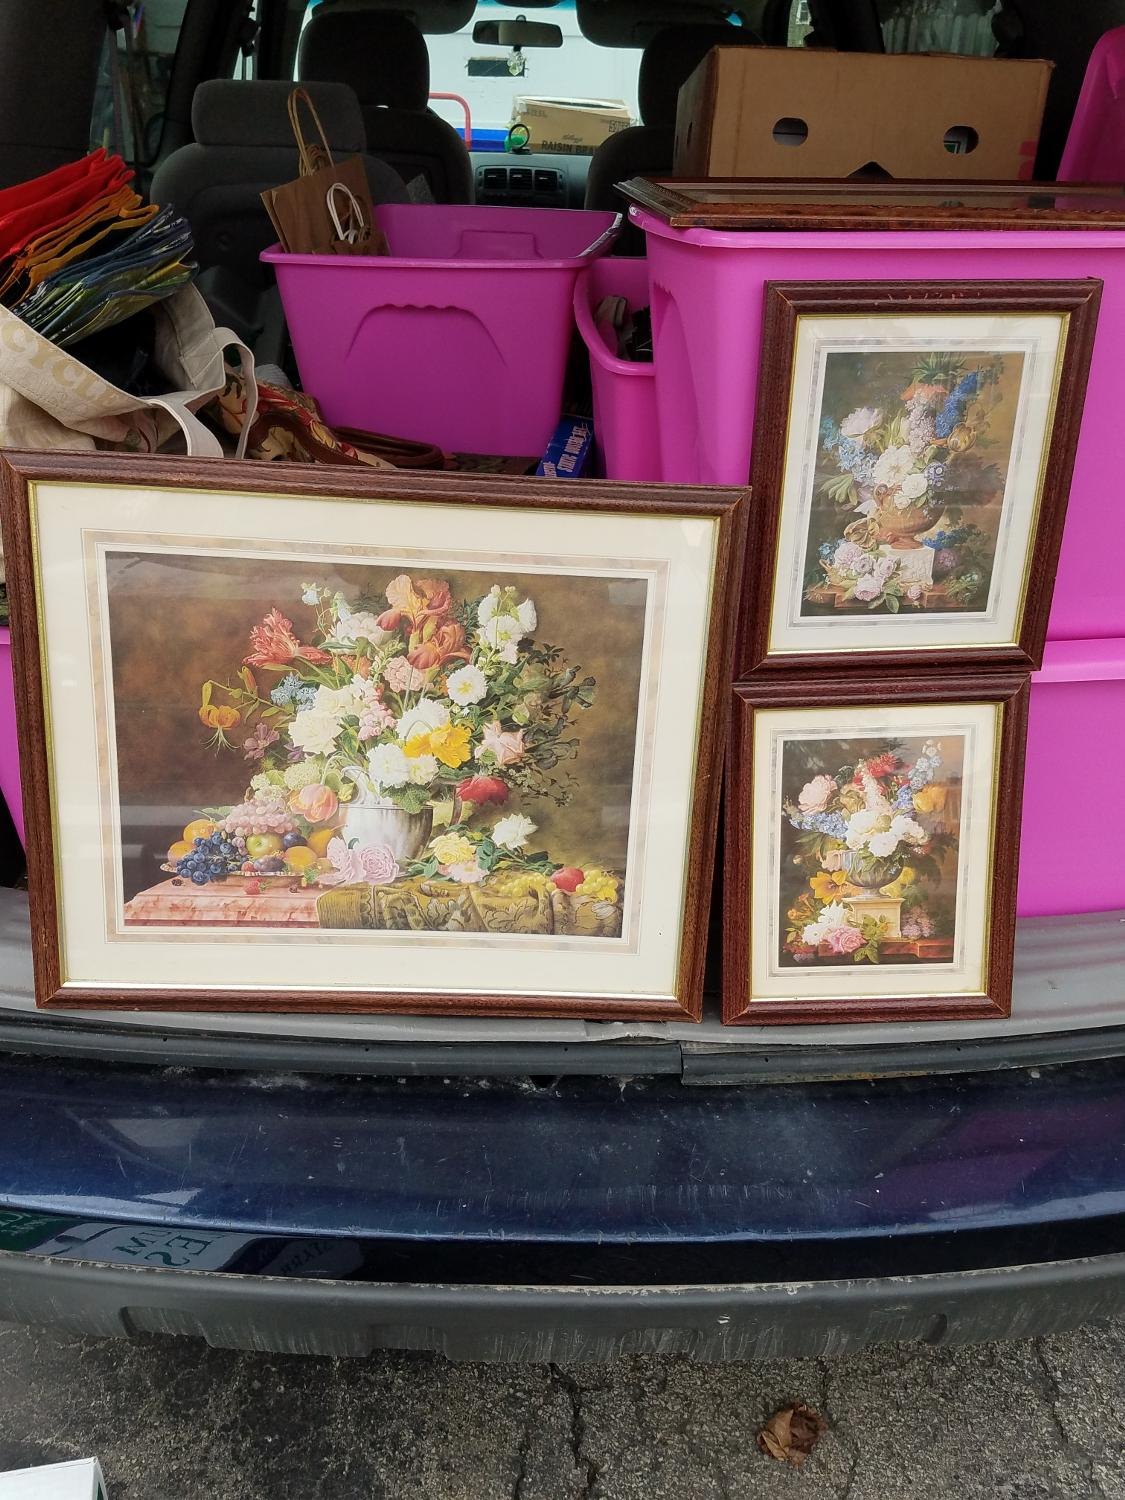 Best Trio Of Floral Picture For Sale In Appleton Wisconsin For 2017